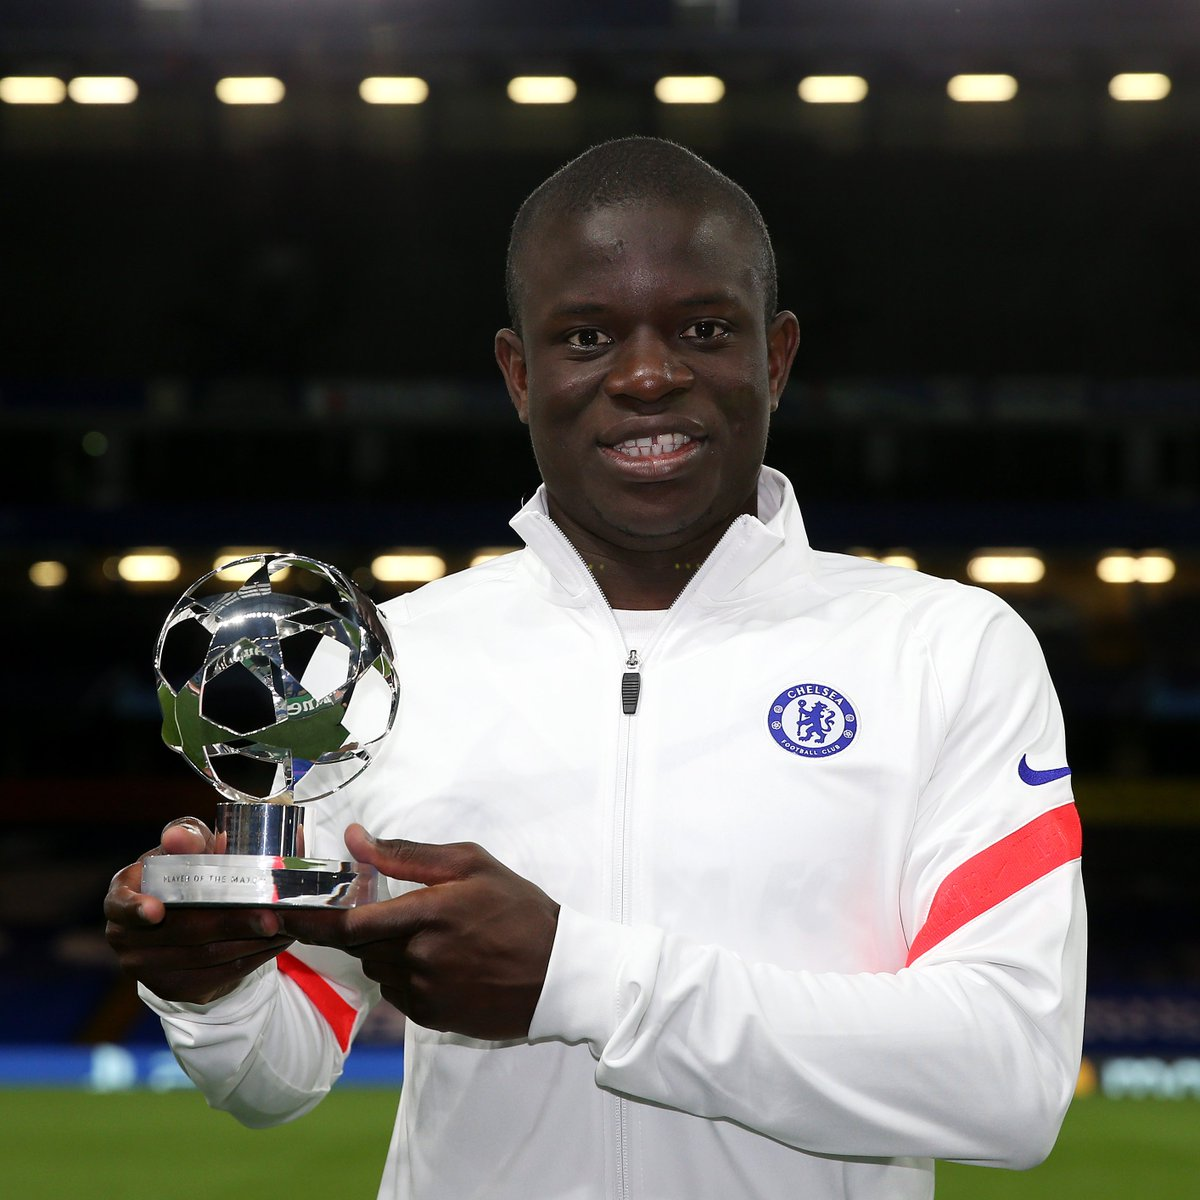 🔵 Kanté in the knockout stages...  🥇 𝐏𝐥𝐚𝐲𝐞𝐫 𝐨𝐟 𝐭𝐡𝐞 𝐌𝐚𝐭𝐜𝐡 🆚 Atlético, round of 16, 2nd leg 🥇 𝐏𝐥𝐚𝐲𝐞𝐫 𝐨𝐟 𝐭𝐡𝐞 𝐌𝐚𝐭𝐜𝐡 🆚 Real Madrid, semi-finals, 1st leg 🥇 𝐏𝐥𝐚𝐲𝐞𝐫 𝐨𝐟 𝐭𝐡𝐞 𝐌𝐚𝐭𝐜𝐡 🆚 Real Madrid, semi-finals, 2nd leg  #UCL https://t.co/UCQyDCHwtP